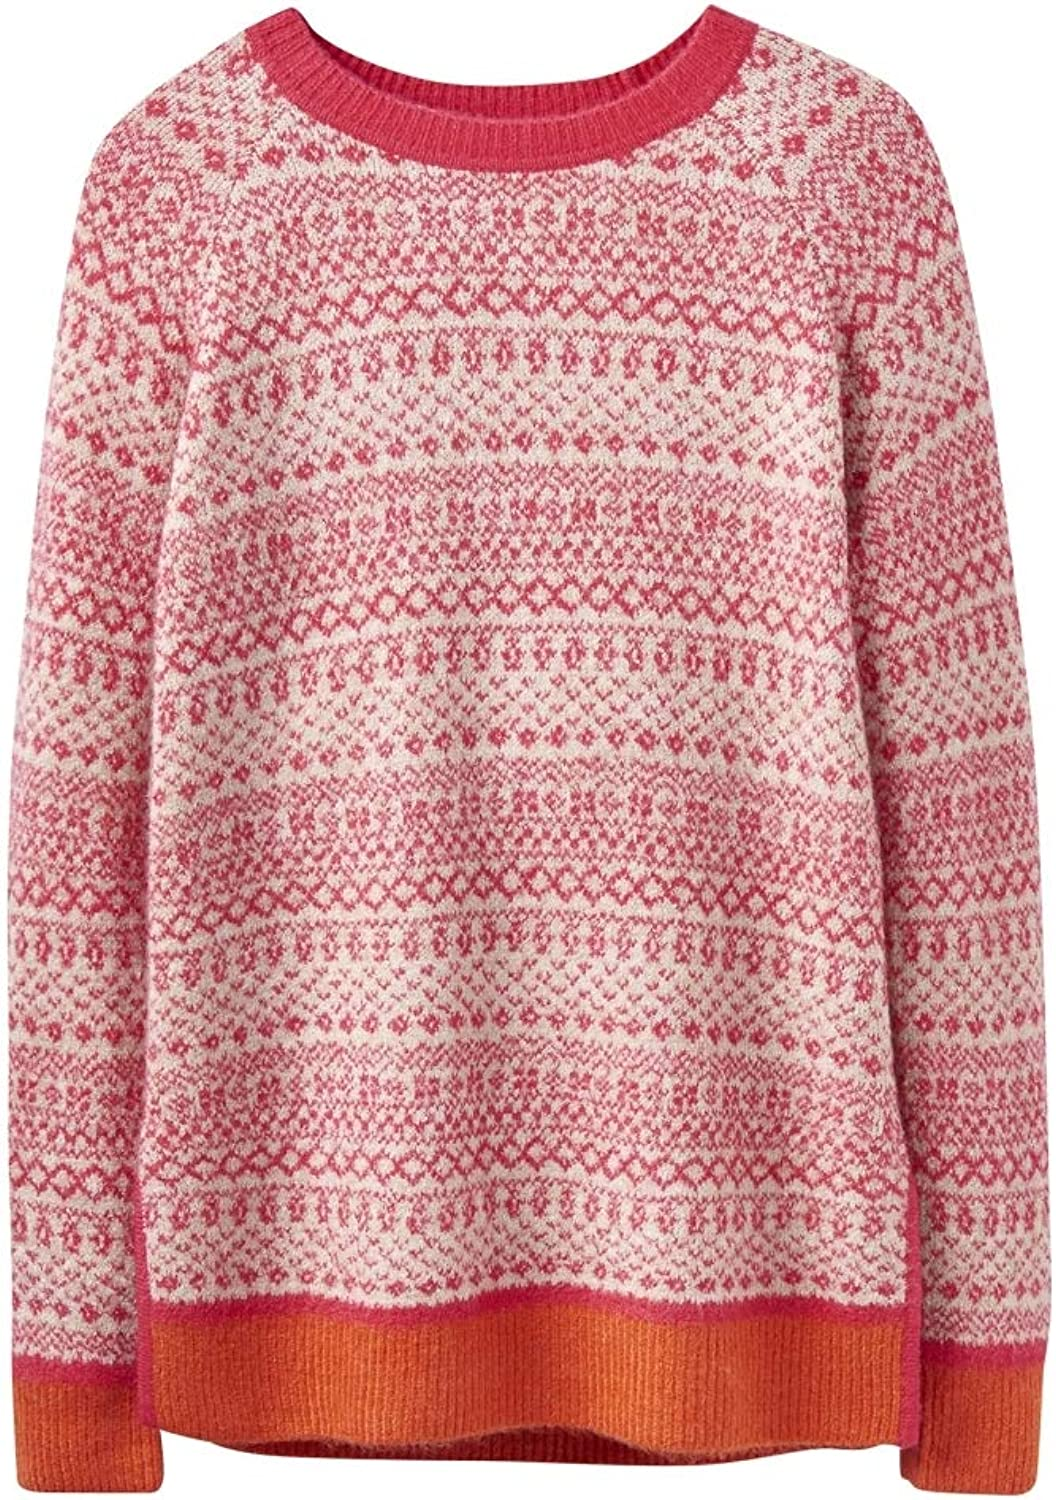 Joules Womens Justina Fair Isle Hem Sweater